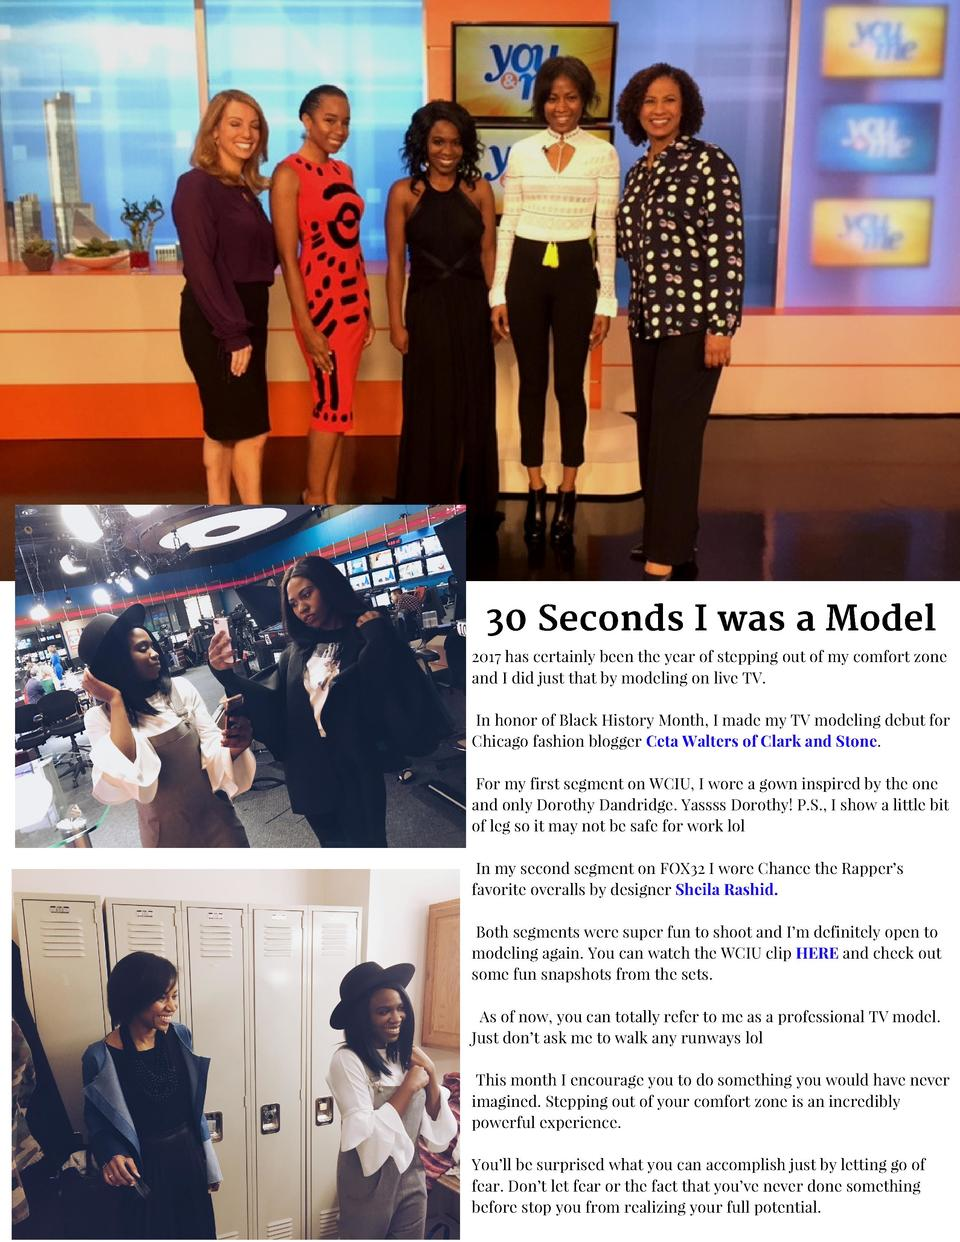 30 Seconds I was a Model 2017 has certainly been the year of stepping out of my comfort zone and I did just that by modeli...